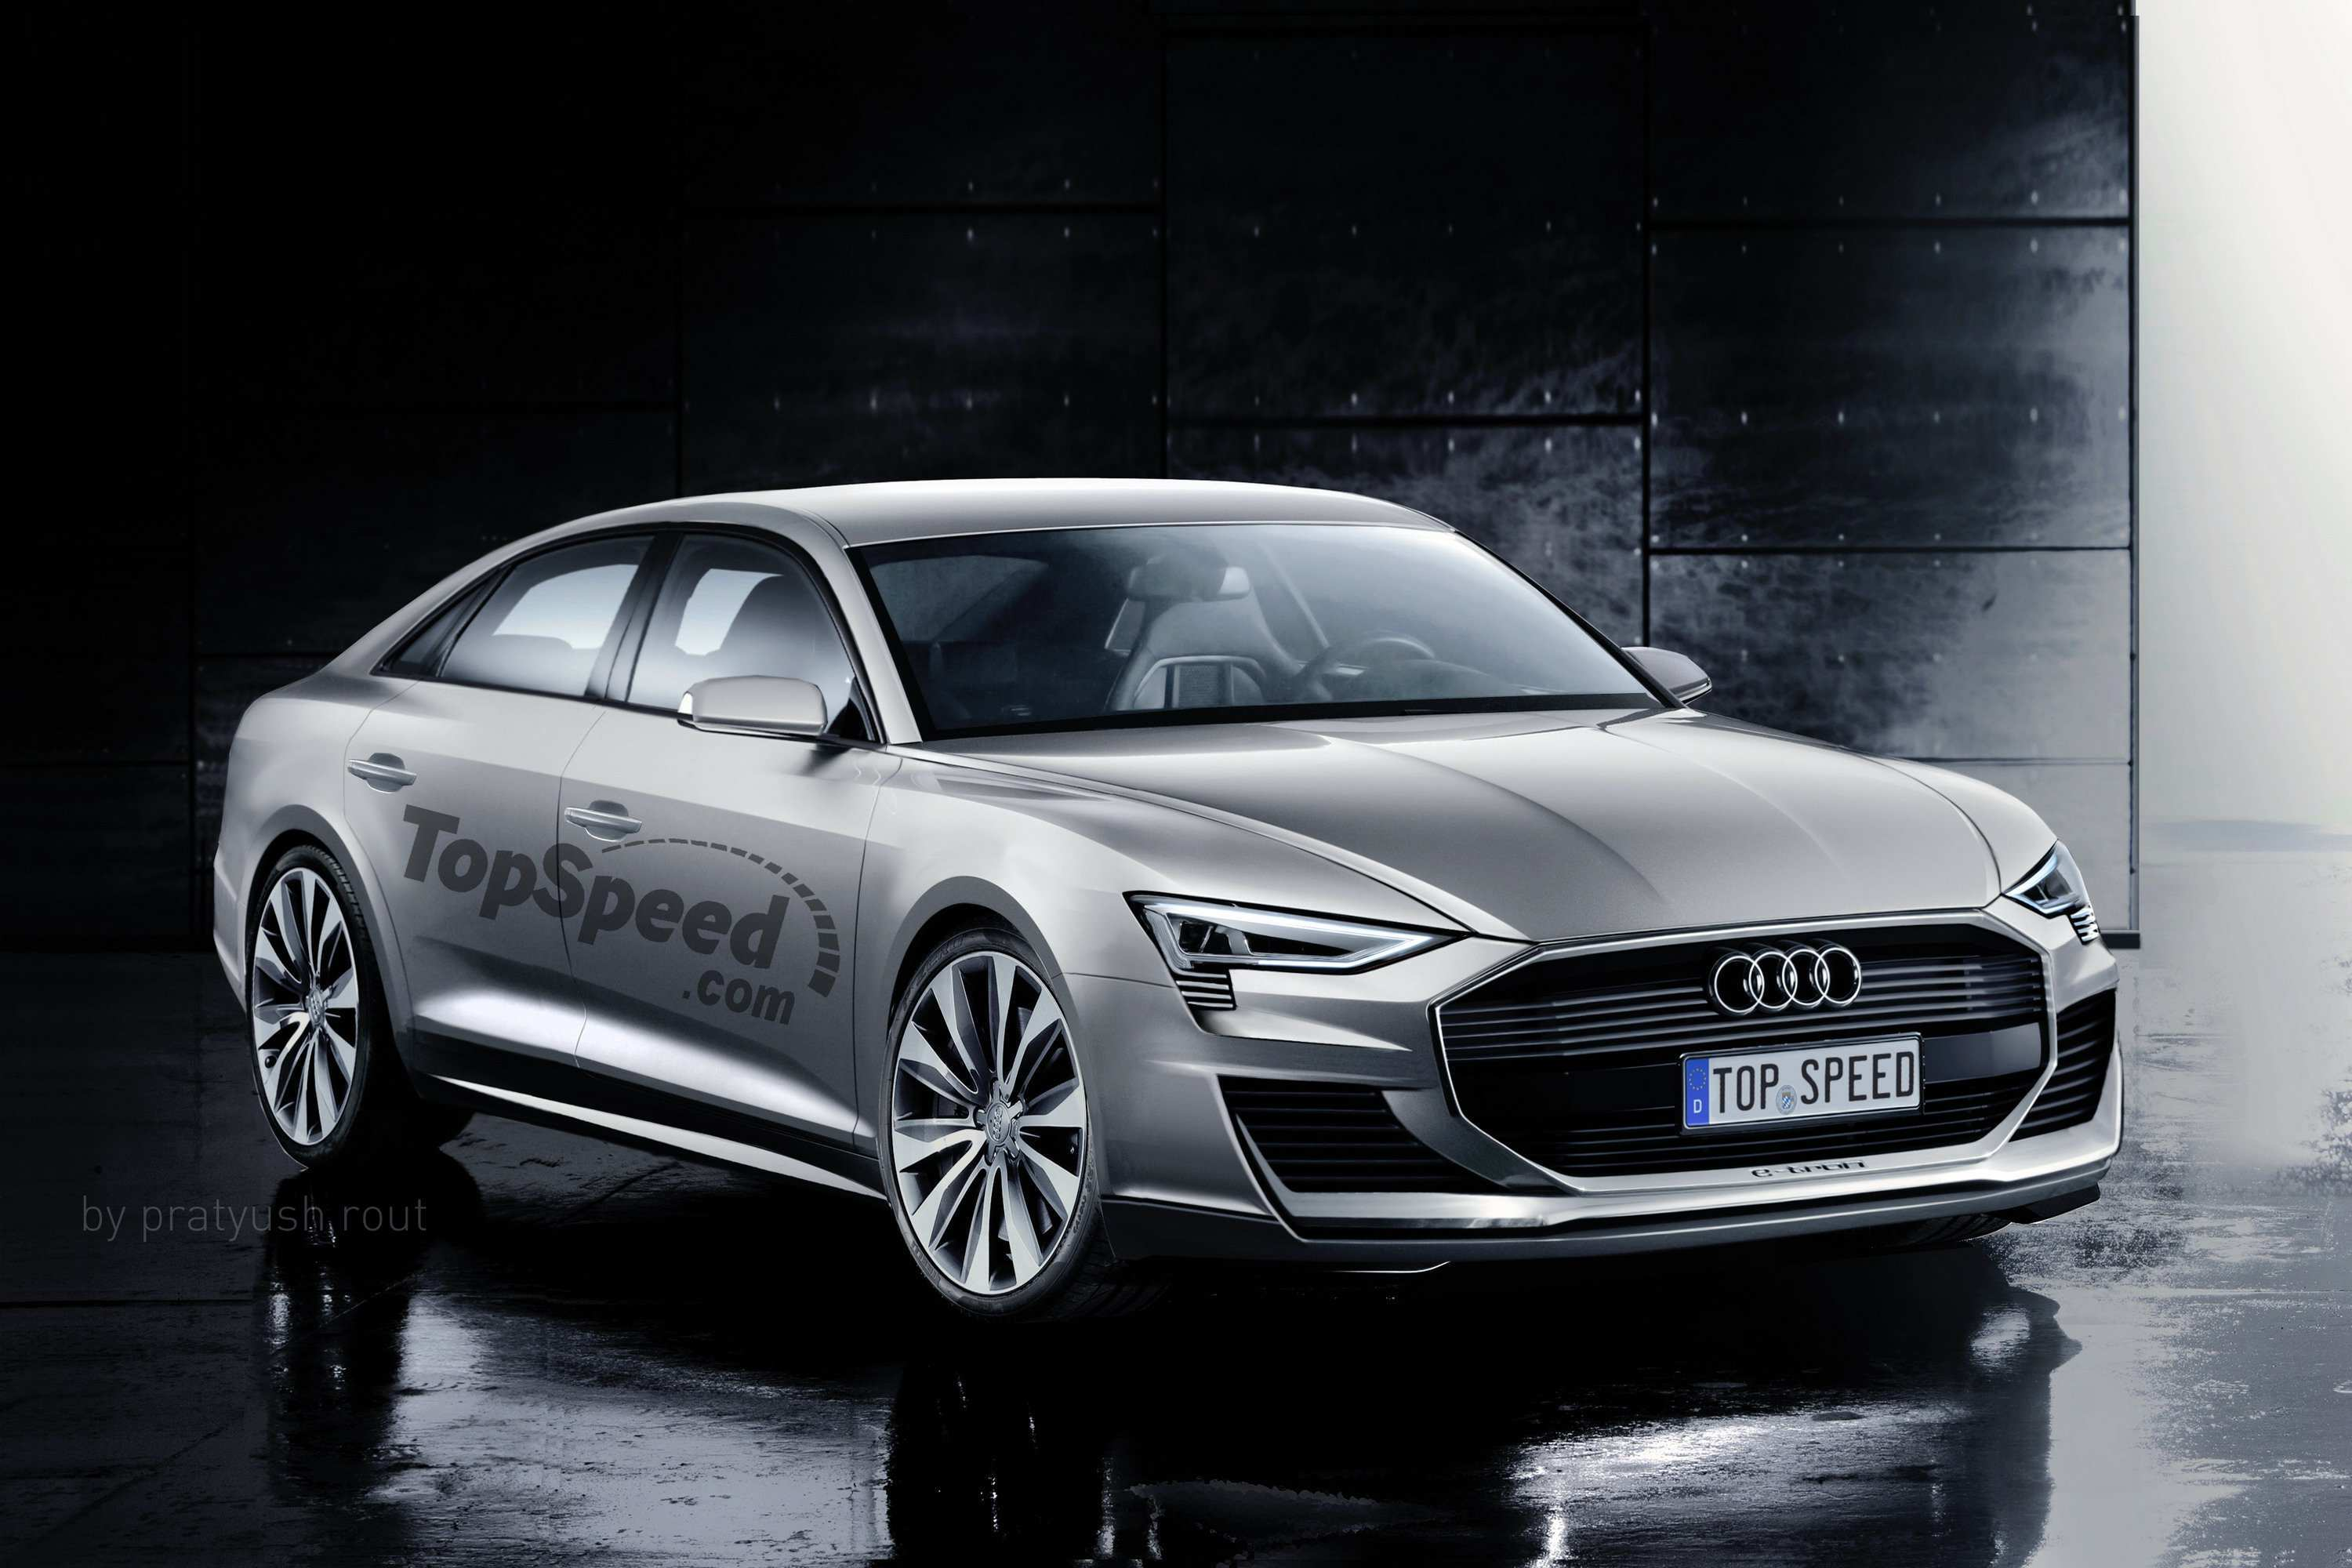 67 New 2020 Audi A9 E Tron Specs for 2020 Audi A9 E Tron